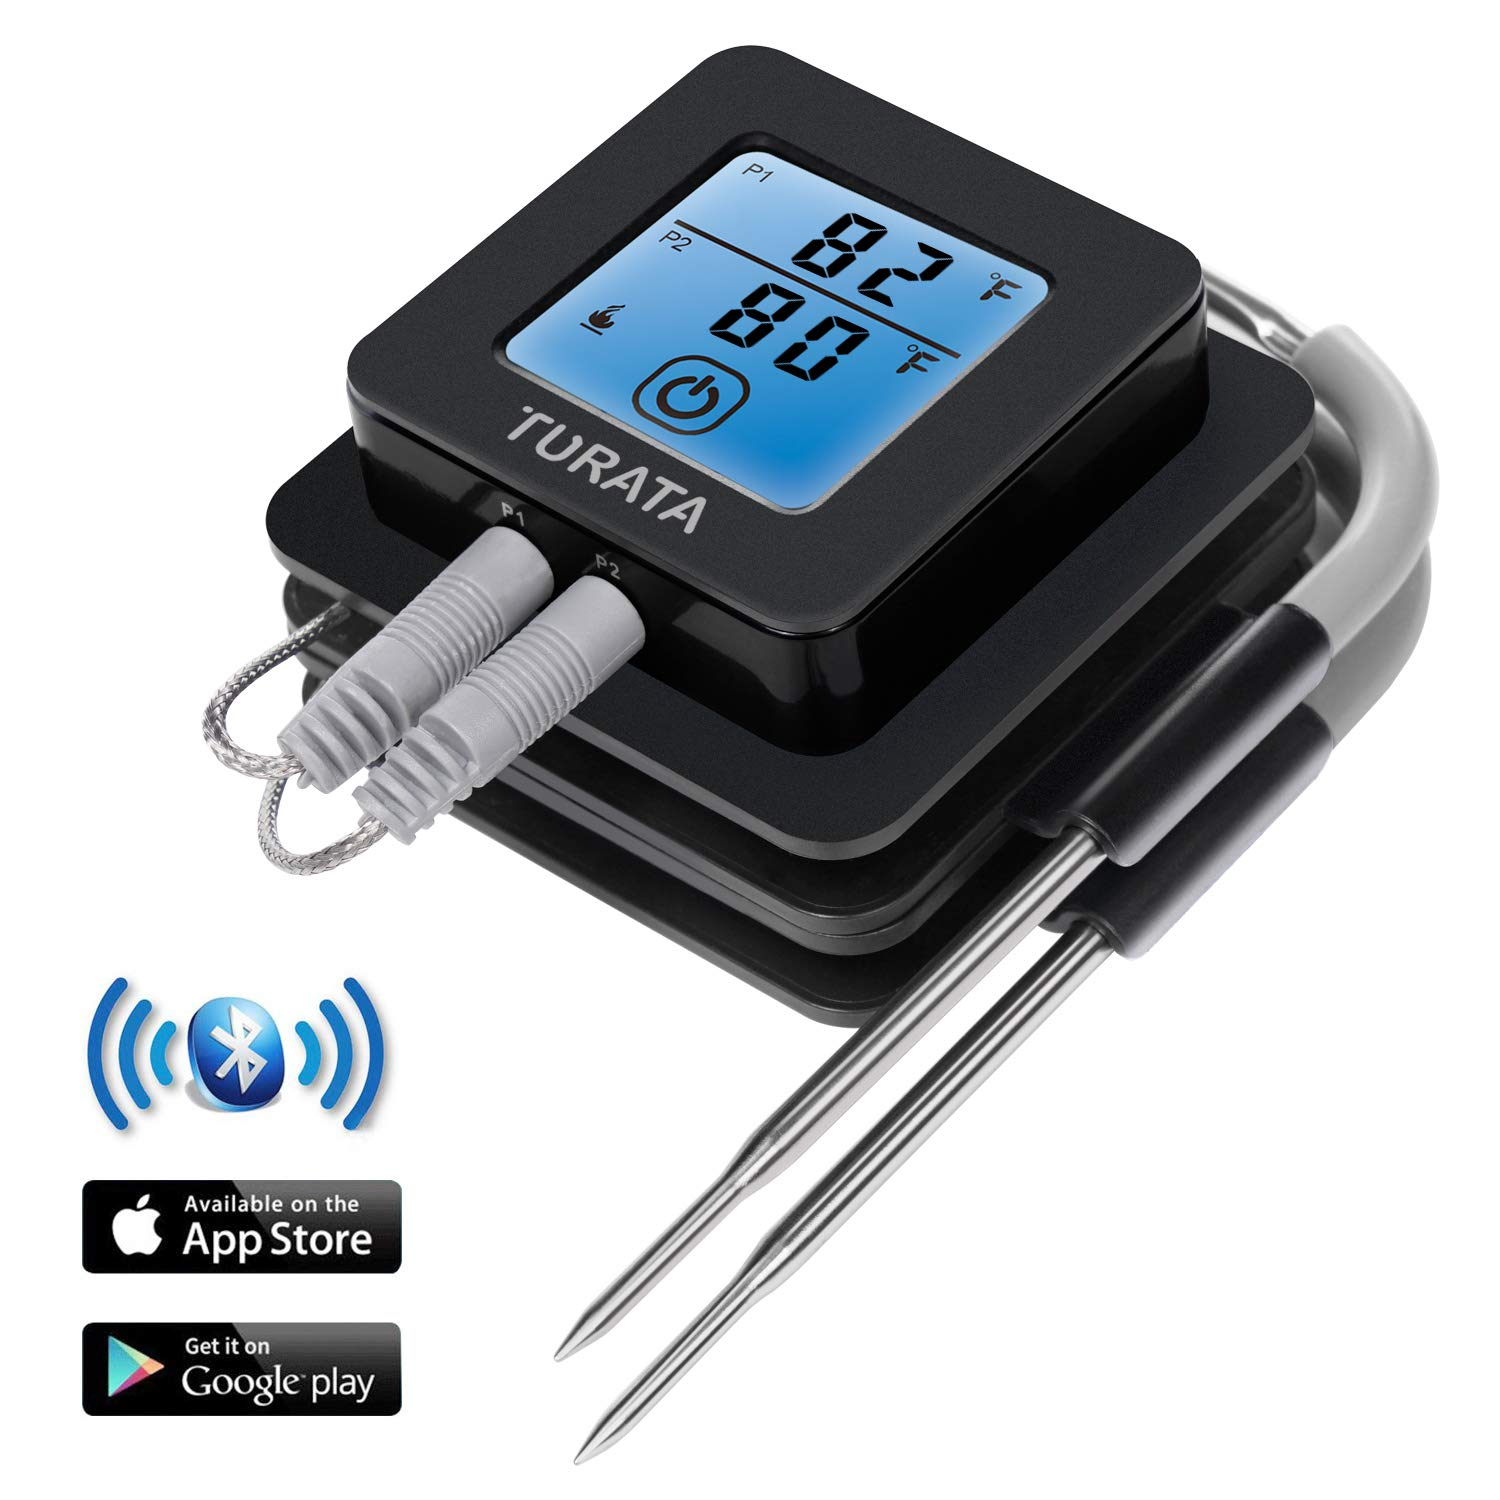 Bluetooth Meat Thermometer for Grilling, TURATA Wireless Remote Thermometer Digital Cooking Thermometer with 2 Steel Probes, Instant Reading, Magnetic Mounting, Alarm Monitor for Cooking, Kitchen, Food, Grill, BBQ, Steak, Turkey, Chicken, Support iOS , An